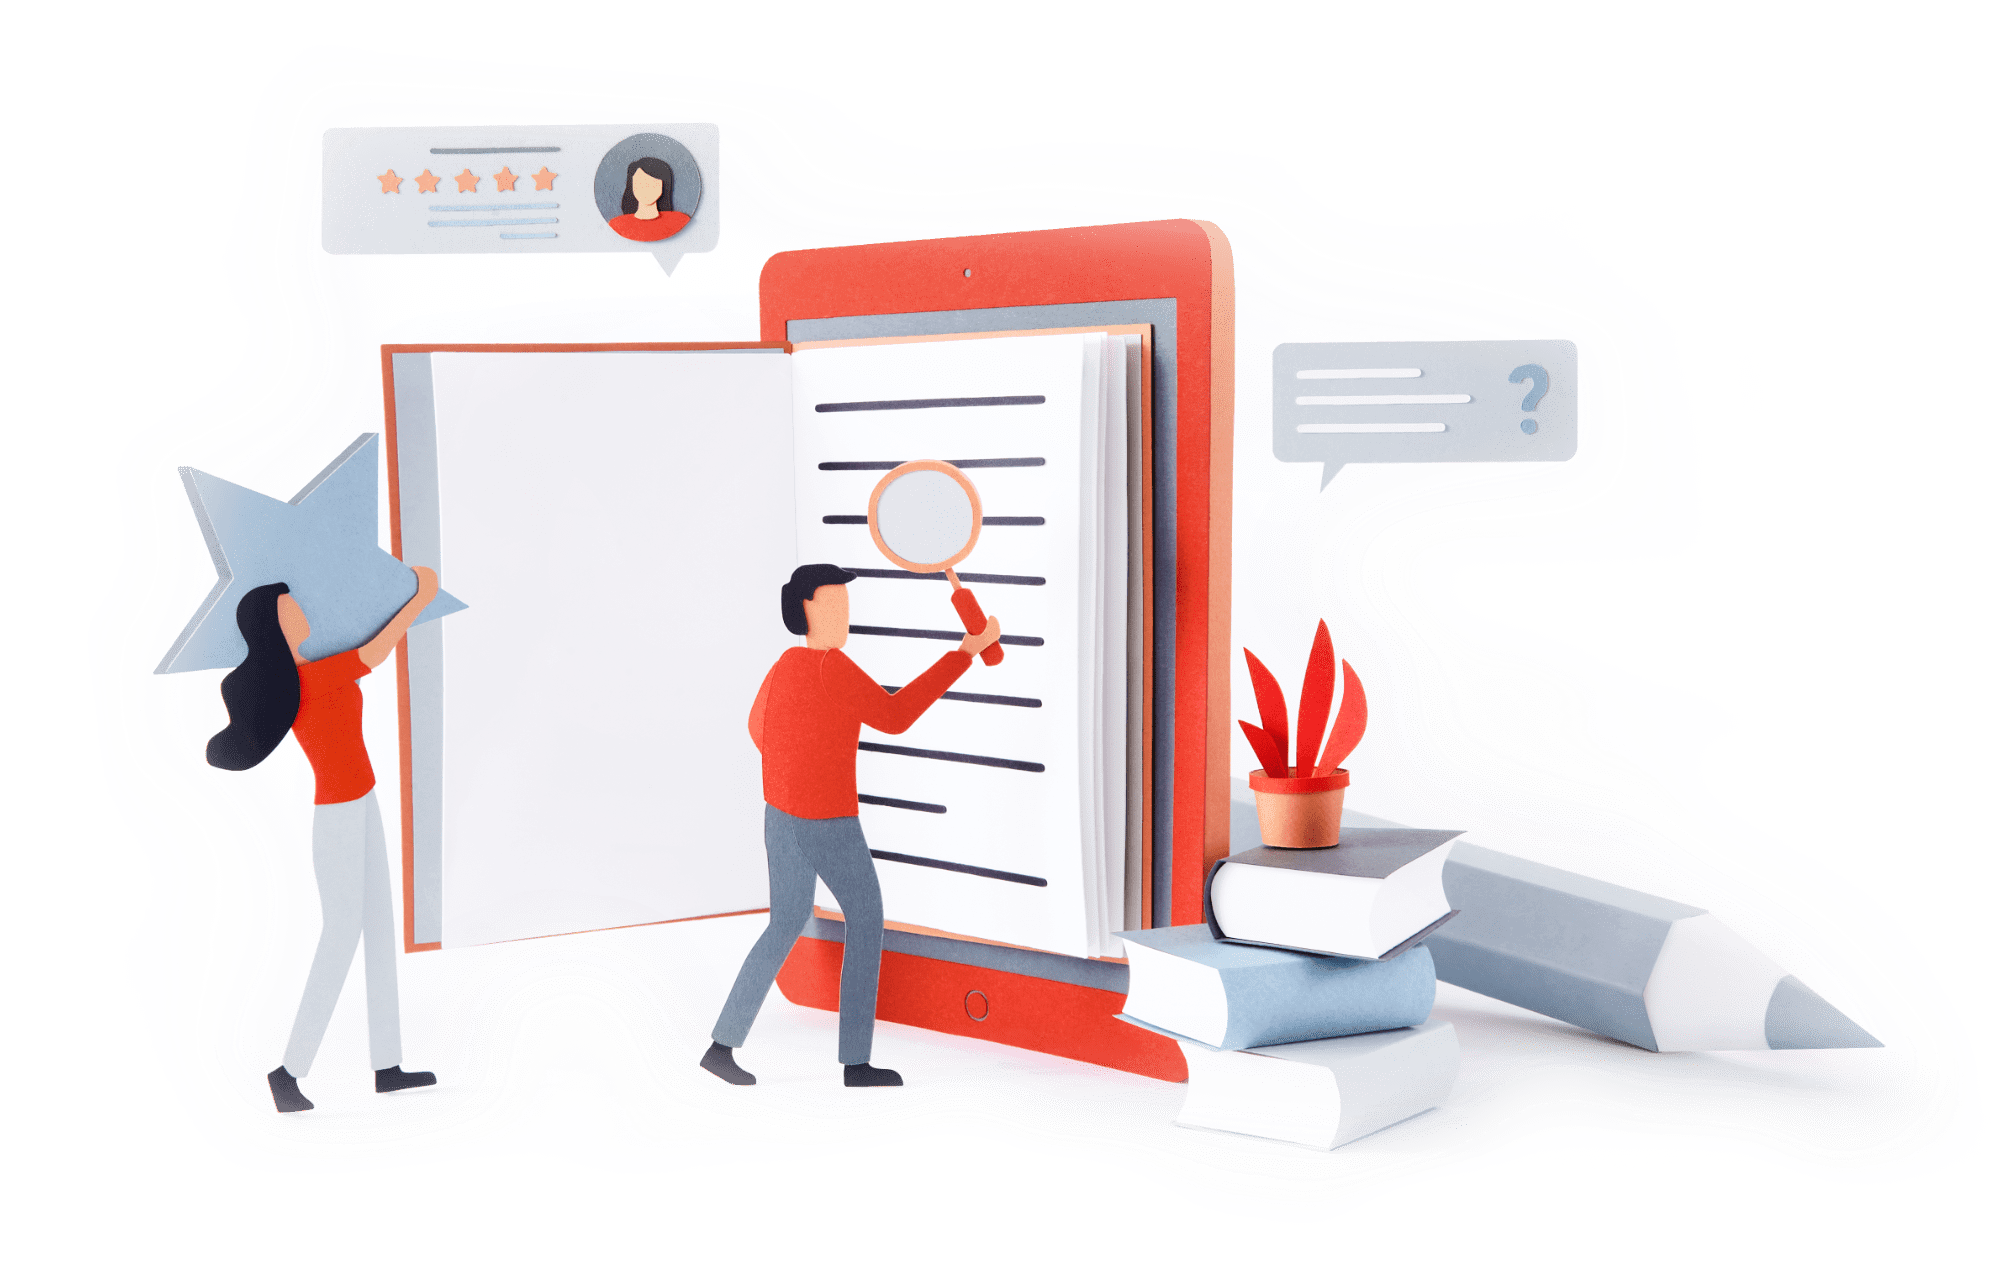 Paper illustration of 3 people at work